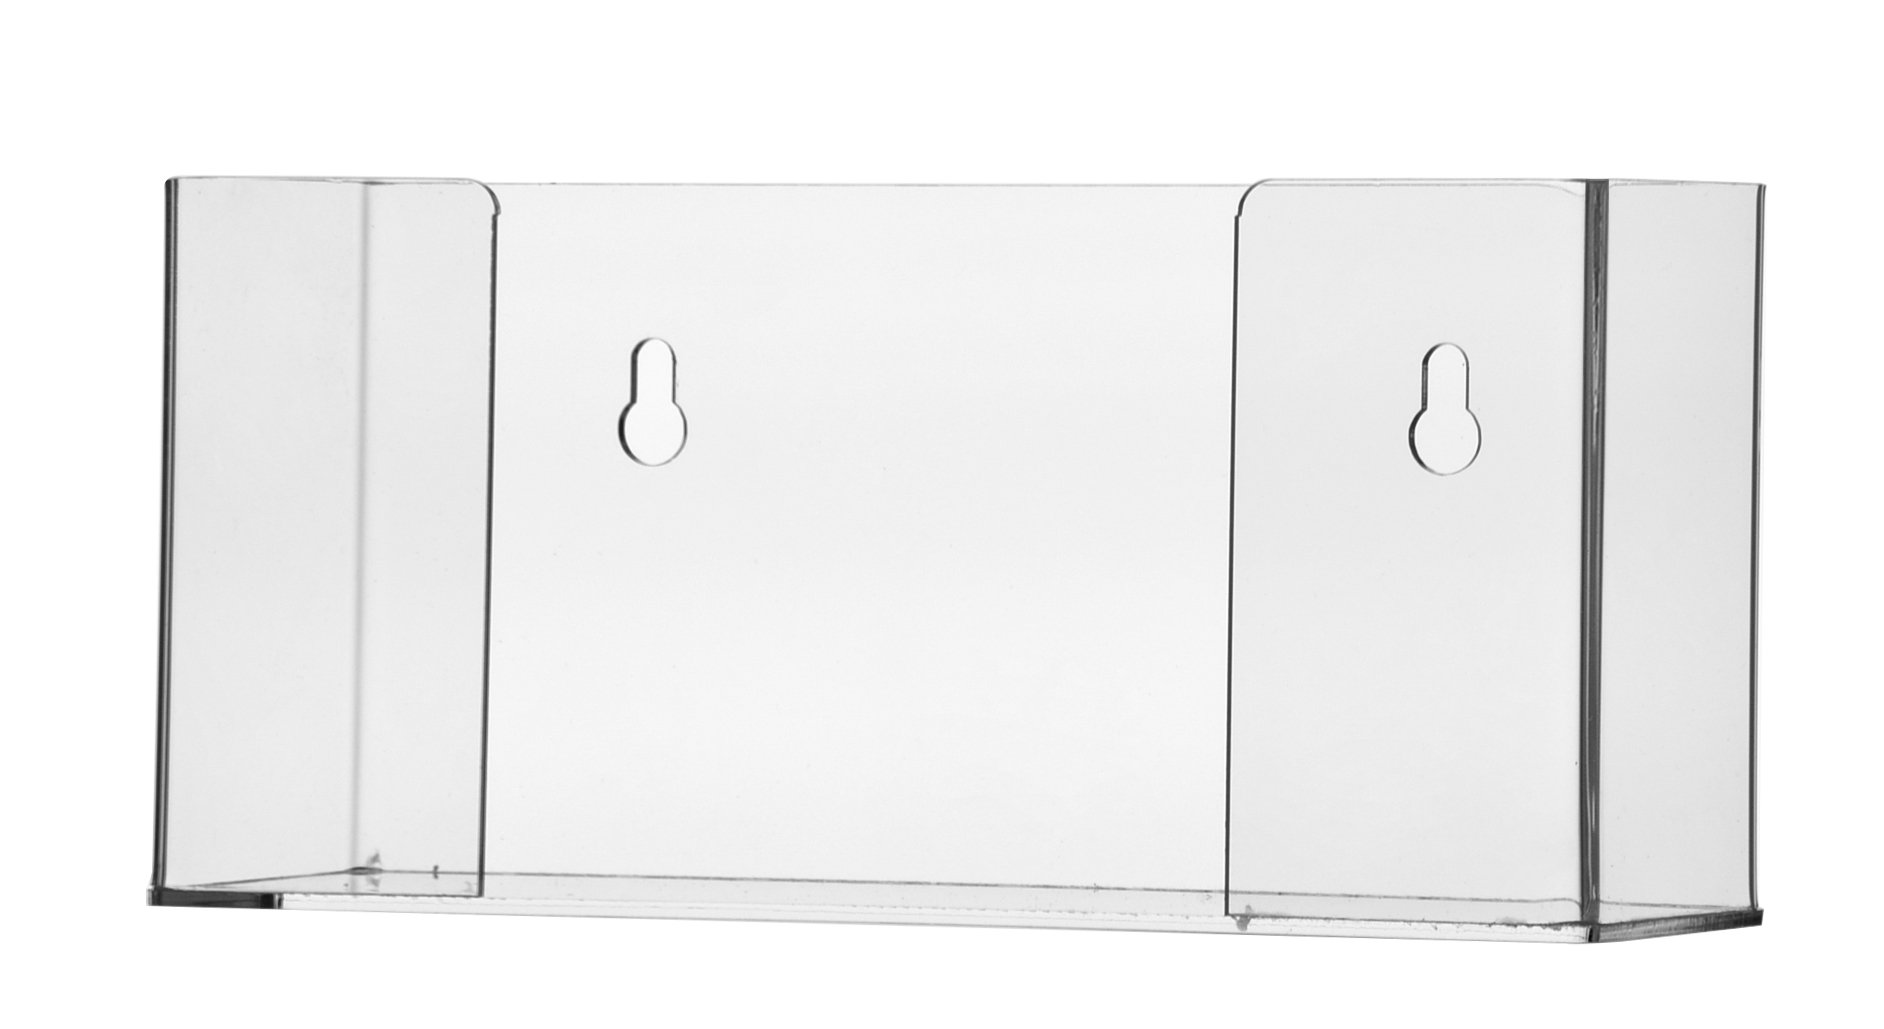 """Marketing Holders 11 1/2""""W x 6 3/4""""H Paper Towel Dispenser or Glove Box Holder Premium Clear Acrylic Pack Of 1 Wall Mount Or Countertop Table Top Hand Towel Organizer Multifold Napkin Glove Box Holder"""